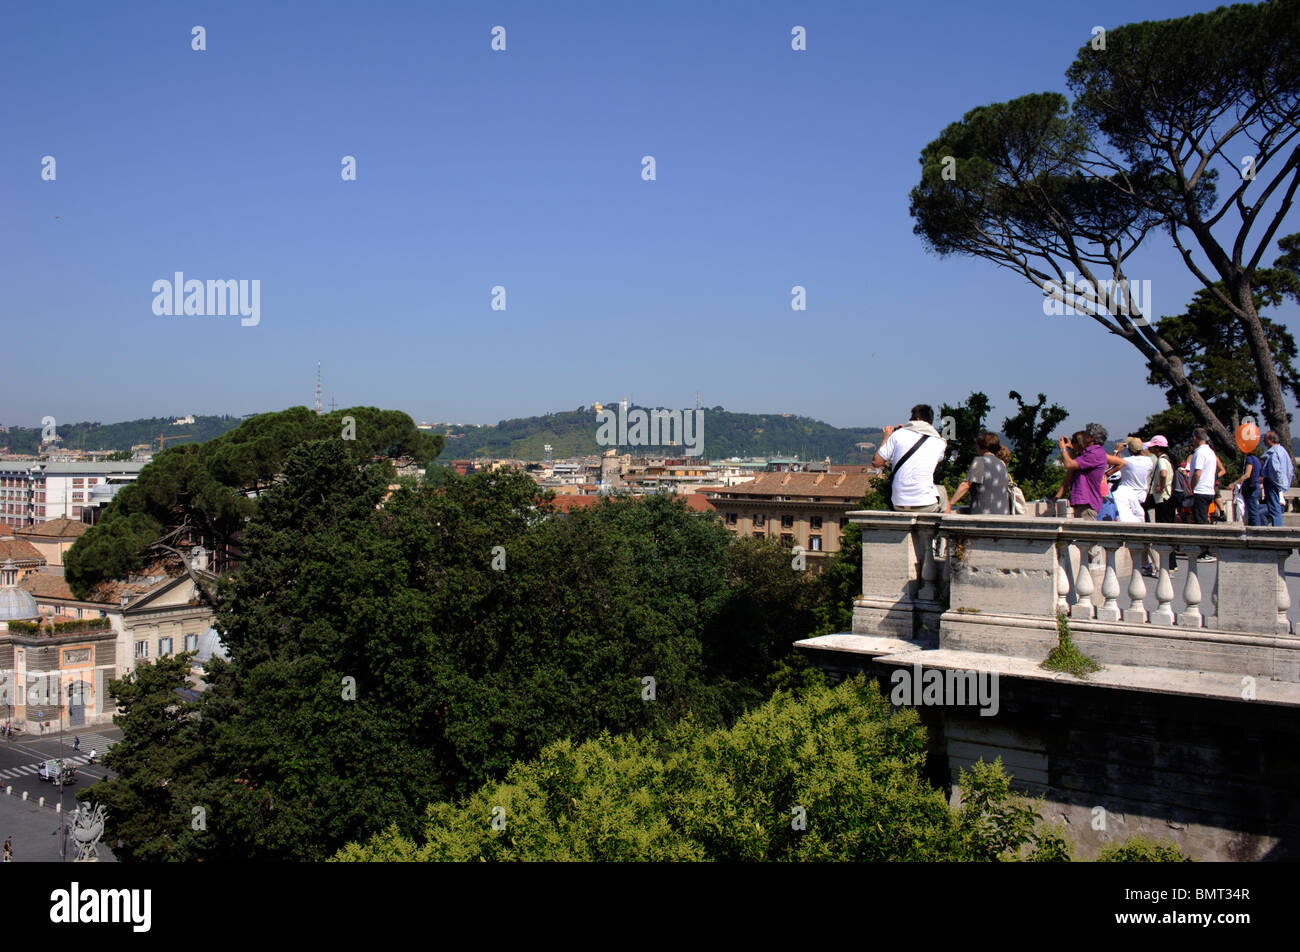 italy, rome, pincio hill, terrace overlooking piazza del popolo, viewpoint - Stock Image